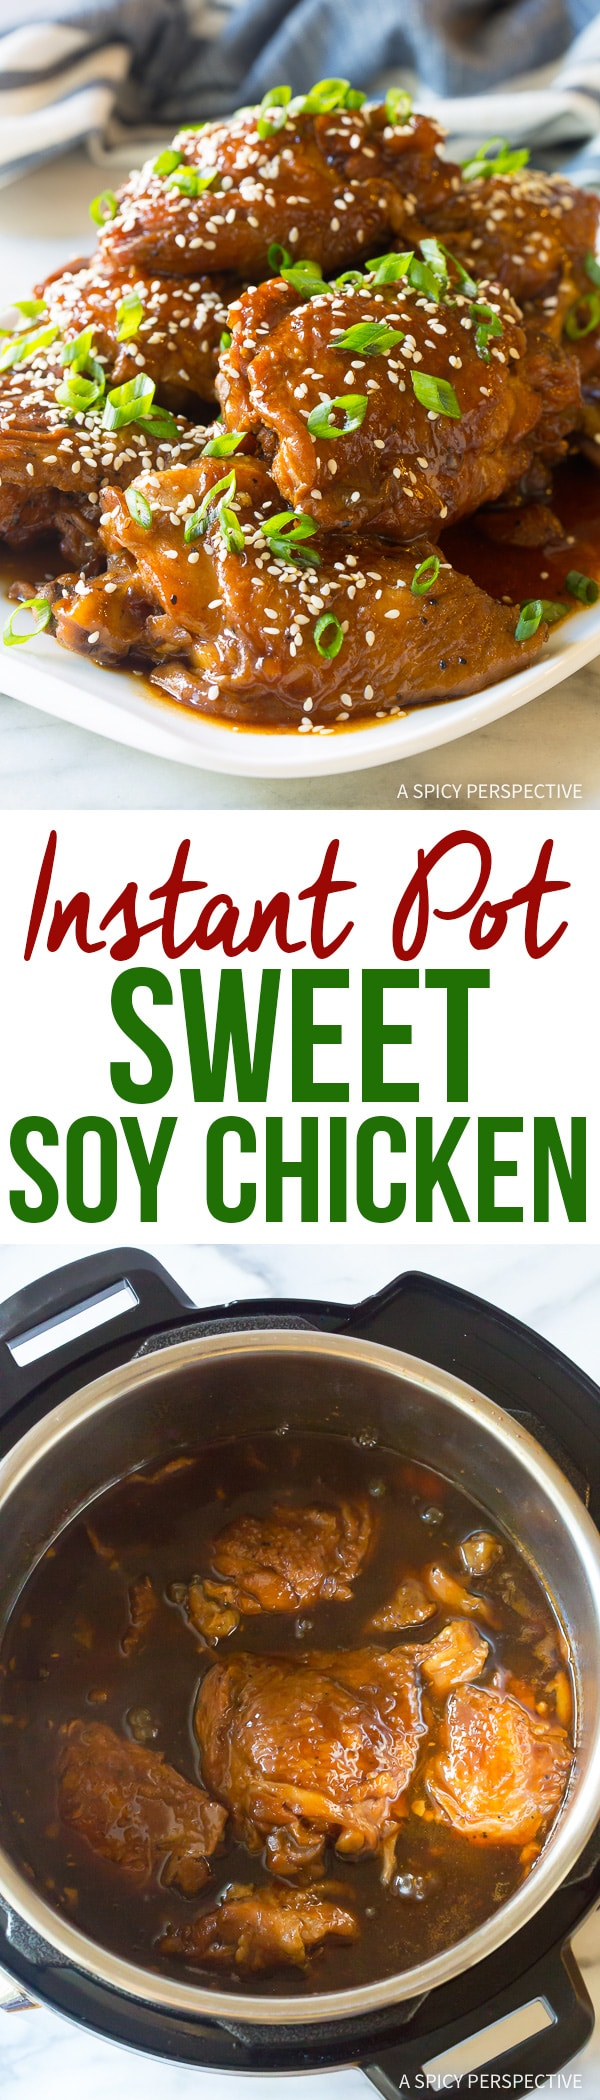 Melt-In-Your-Mouth Instant Pot Sweet Soy Chicken Thighs (Pressure Cooker Recipe)